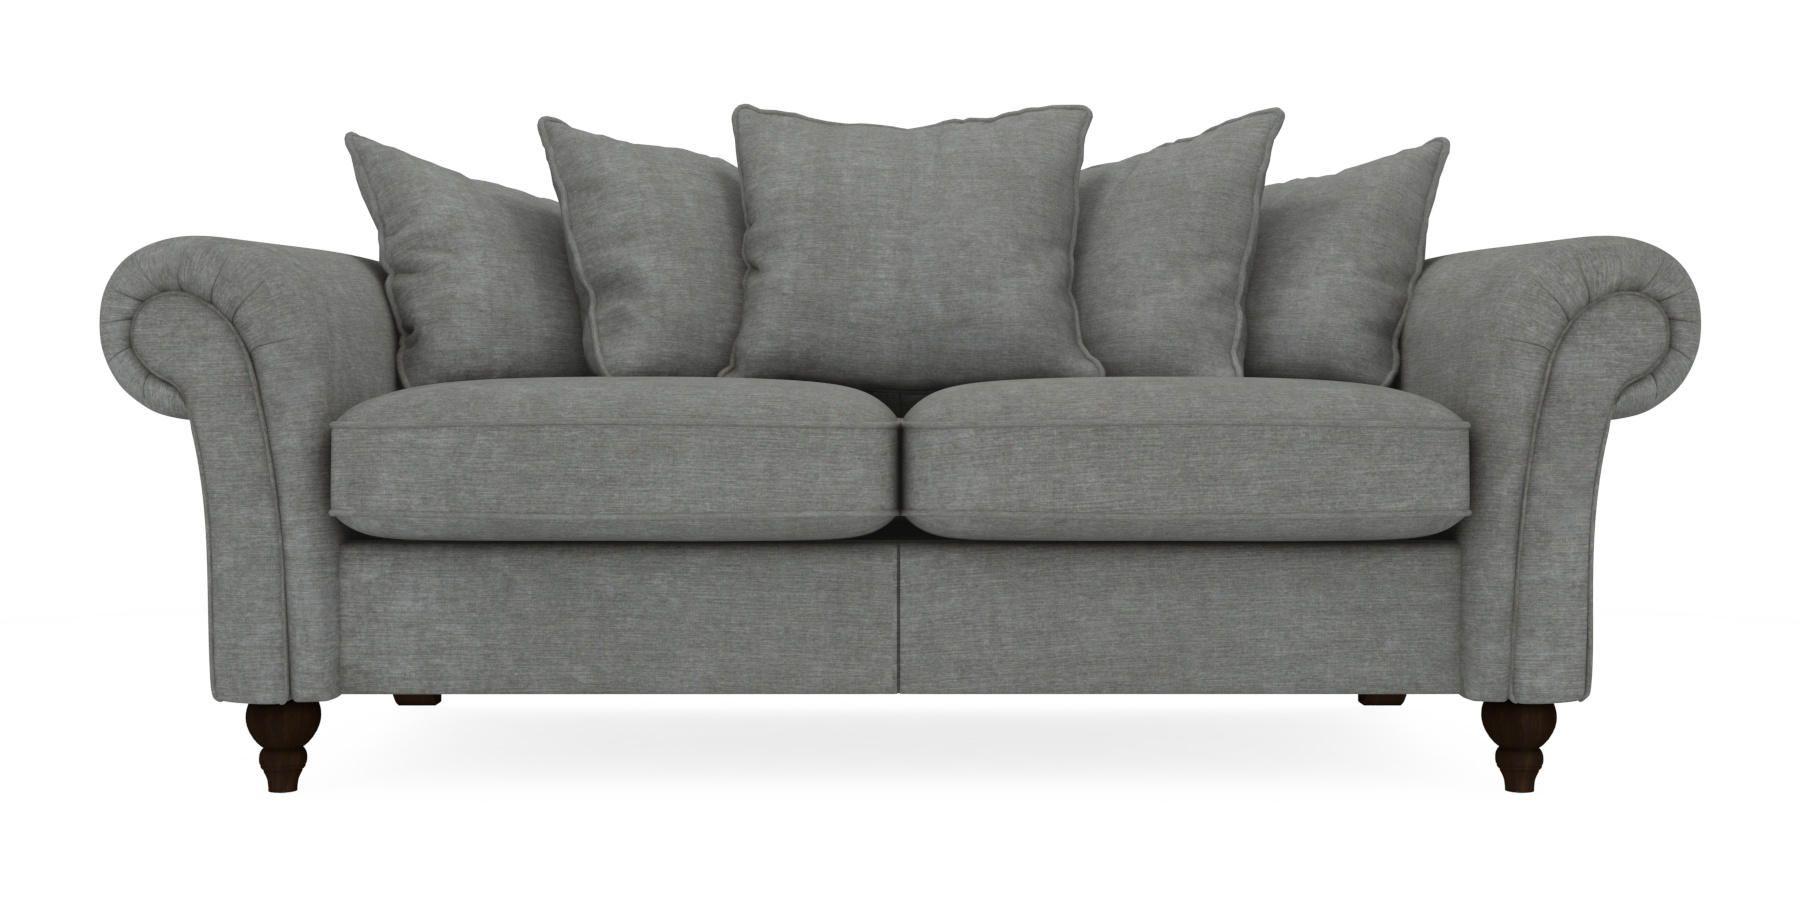 Grey Sofas Uk Next Buy Gosford Scatter Back Large Sofa 3 Seats Soft Marl Mid French